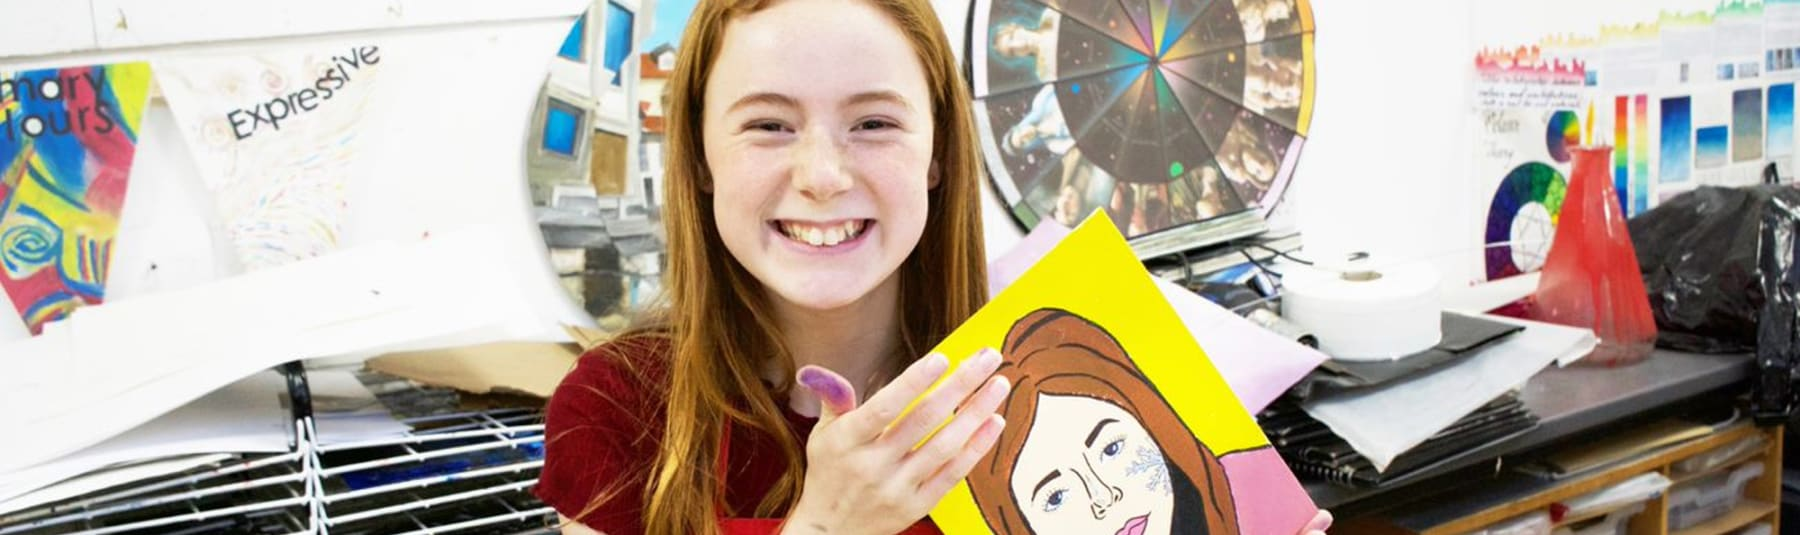 Girl holding up a painted self portrait.